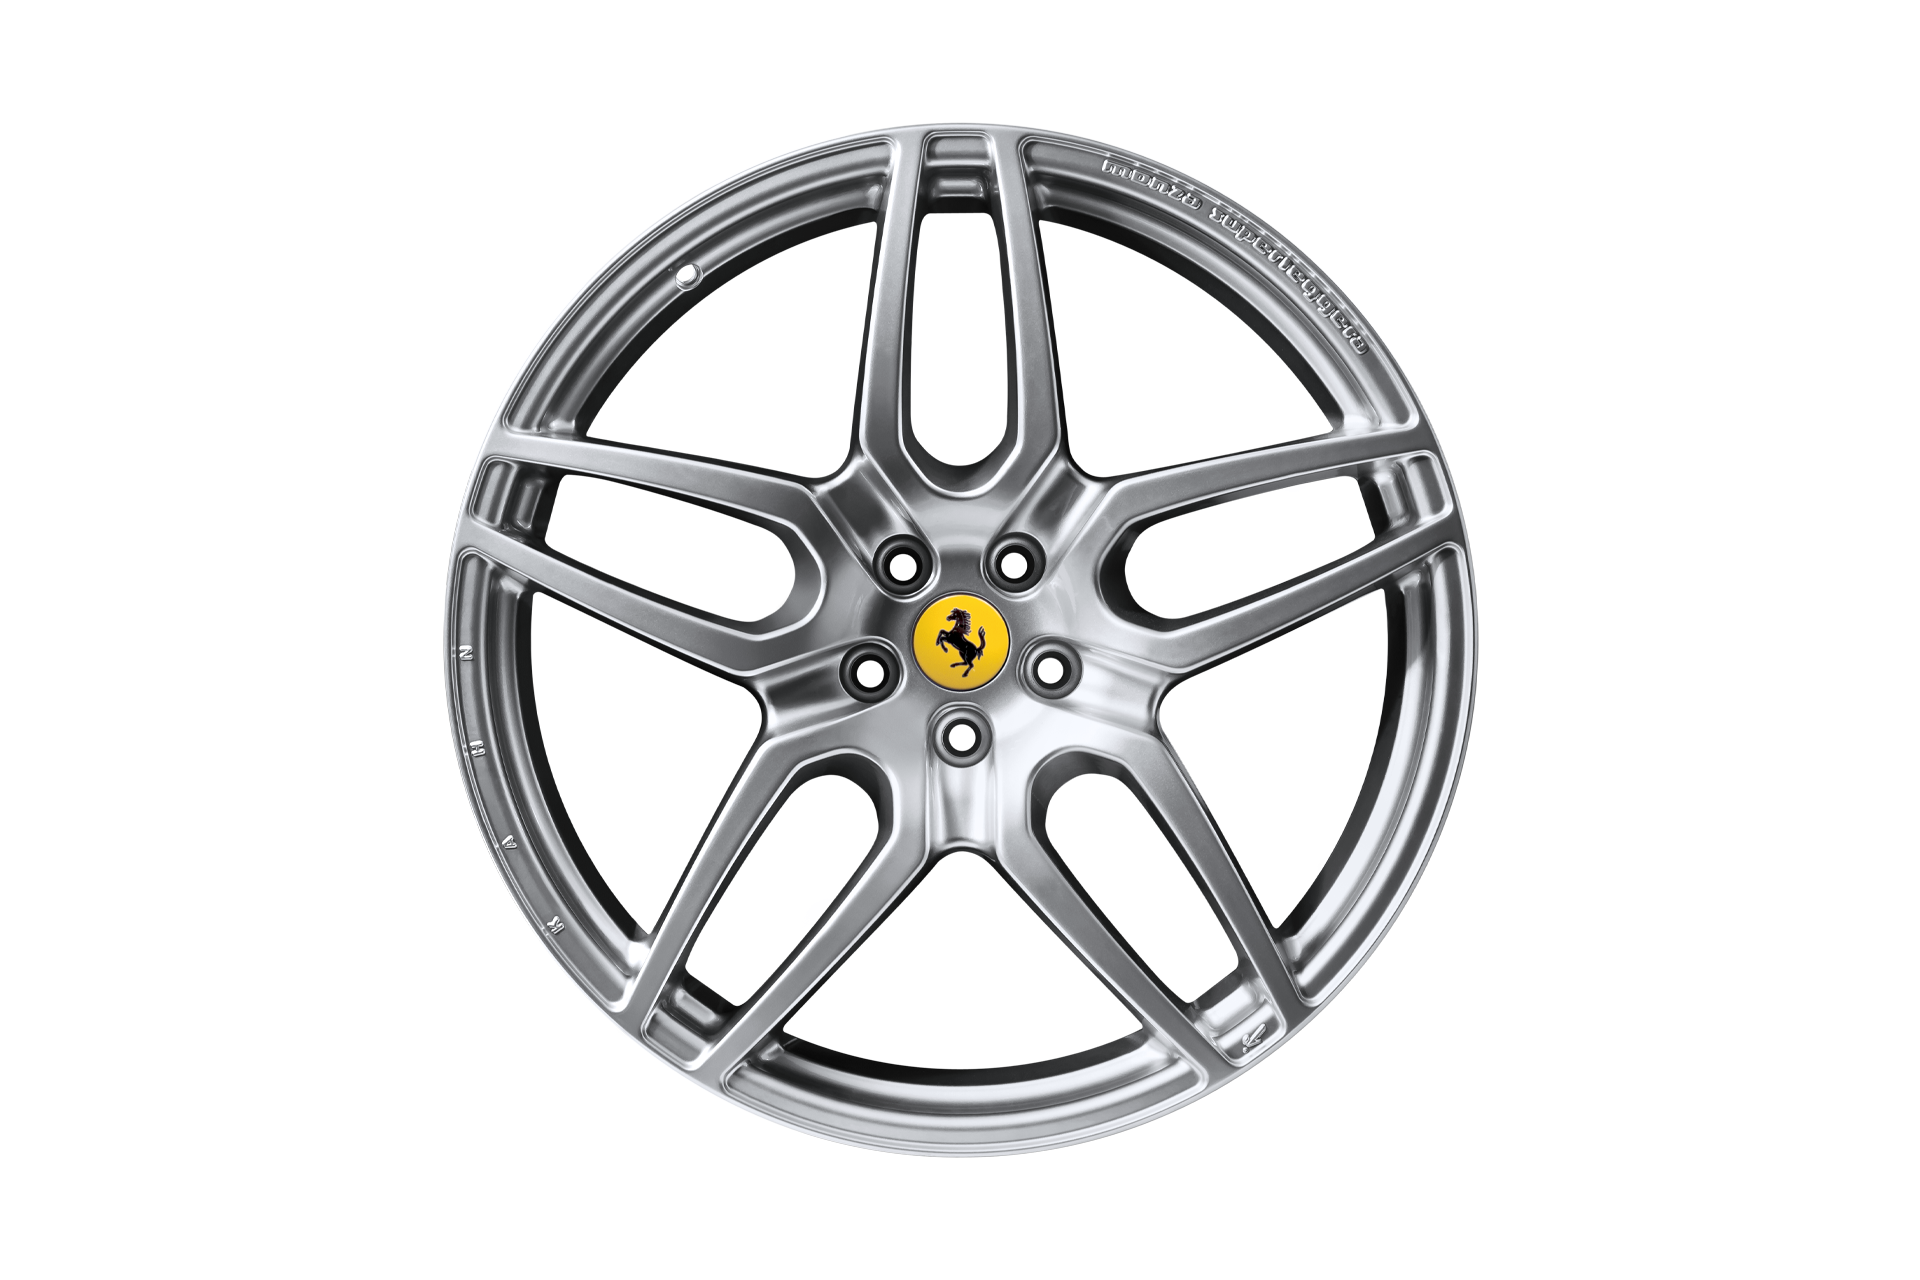 FERRARI 458 MONZA SUPERLEGGERA Light Alloy Wheels